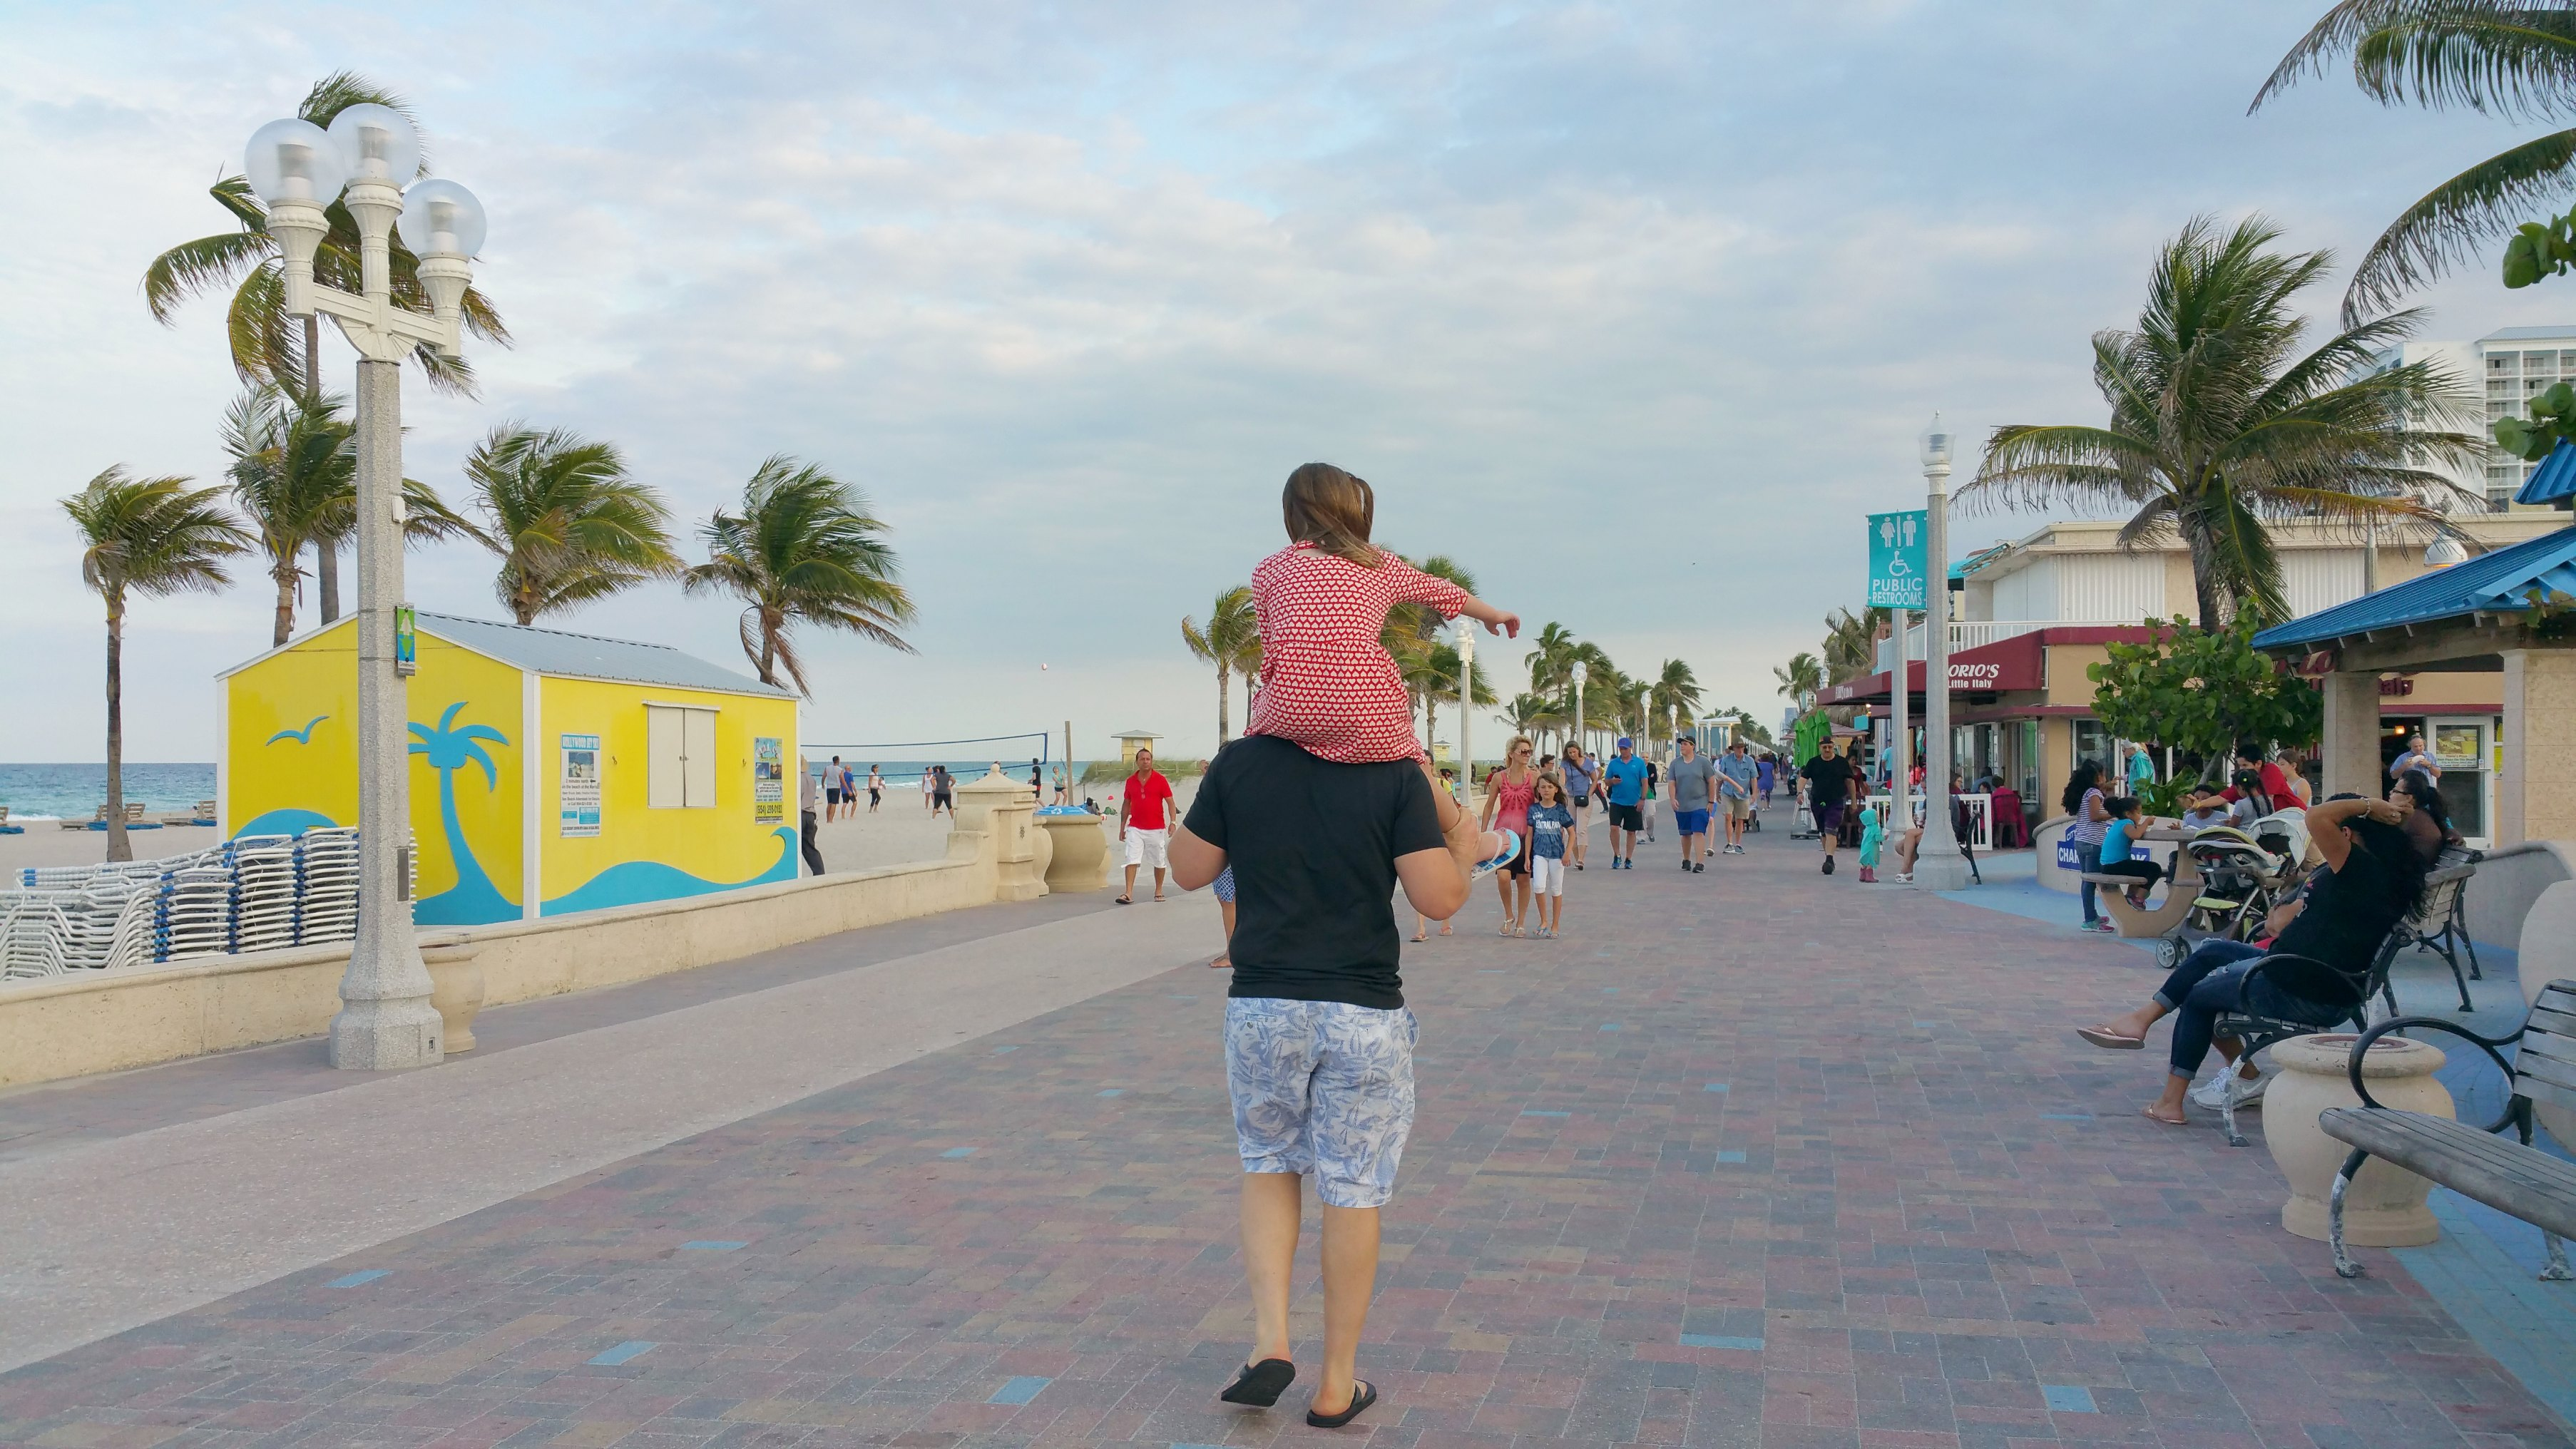 20 Best Family Beach Vacations In The USA  Its a Lovely